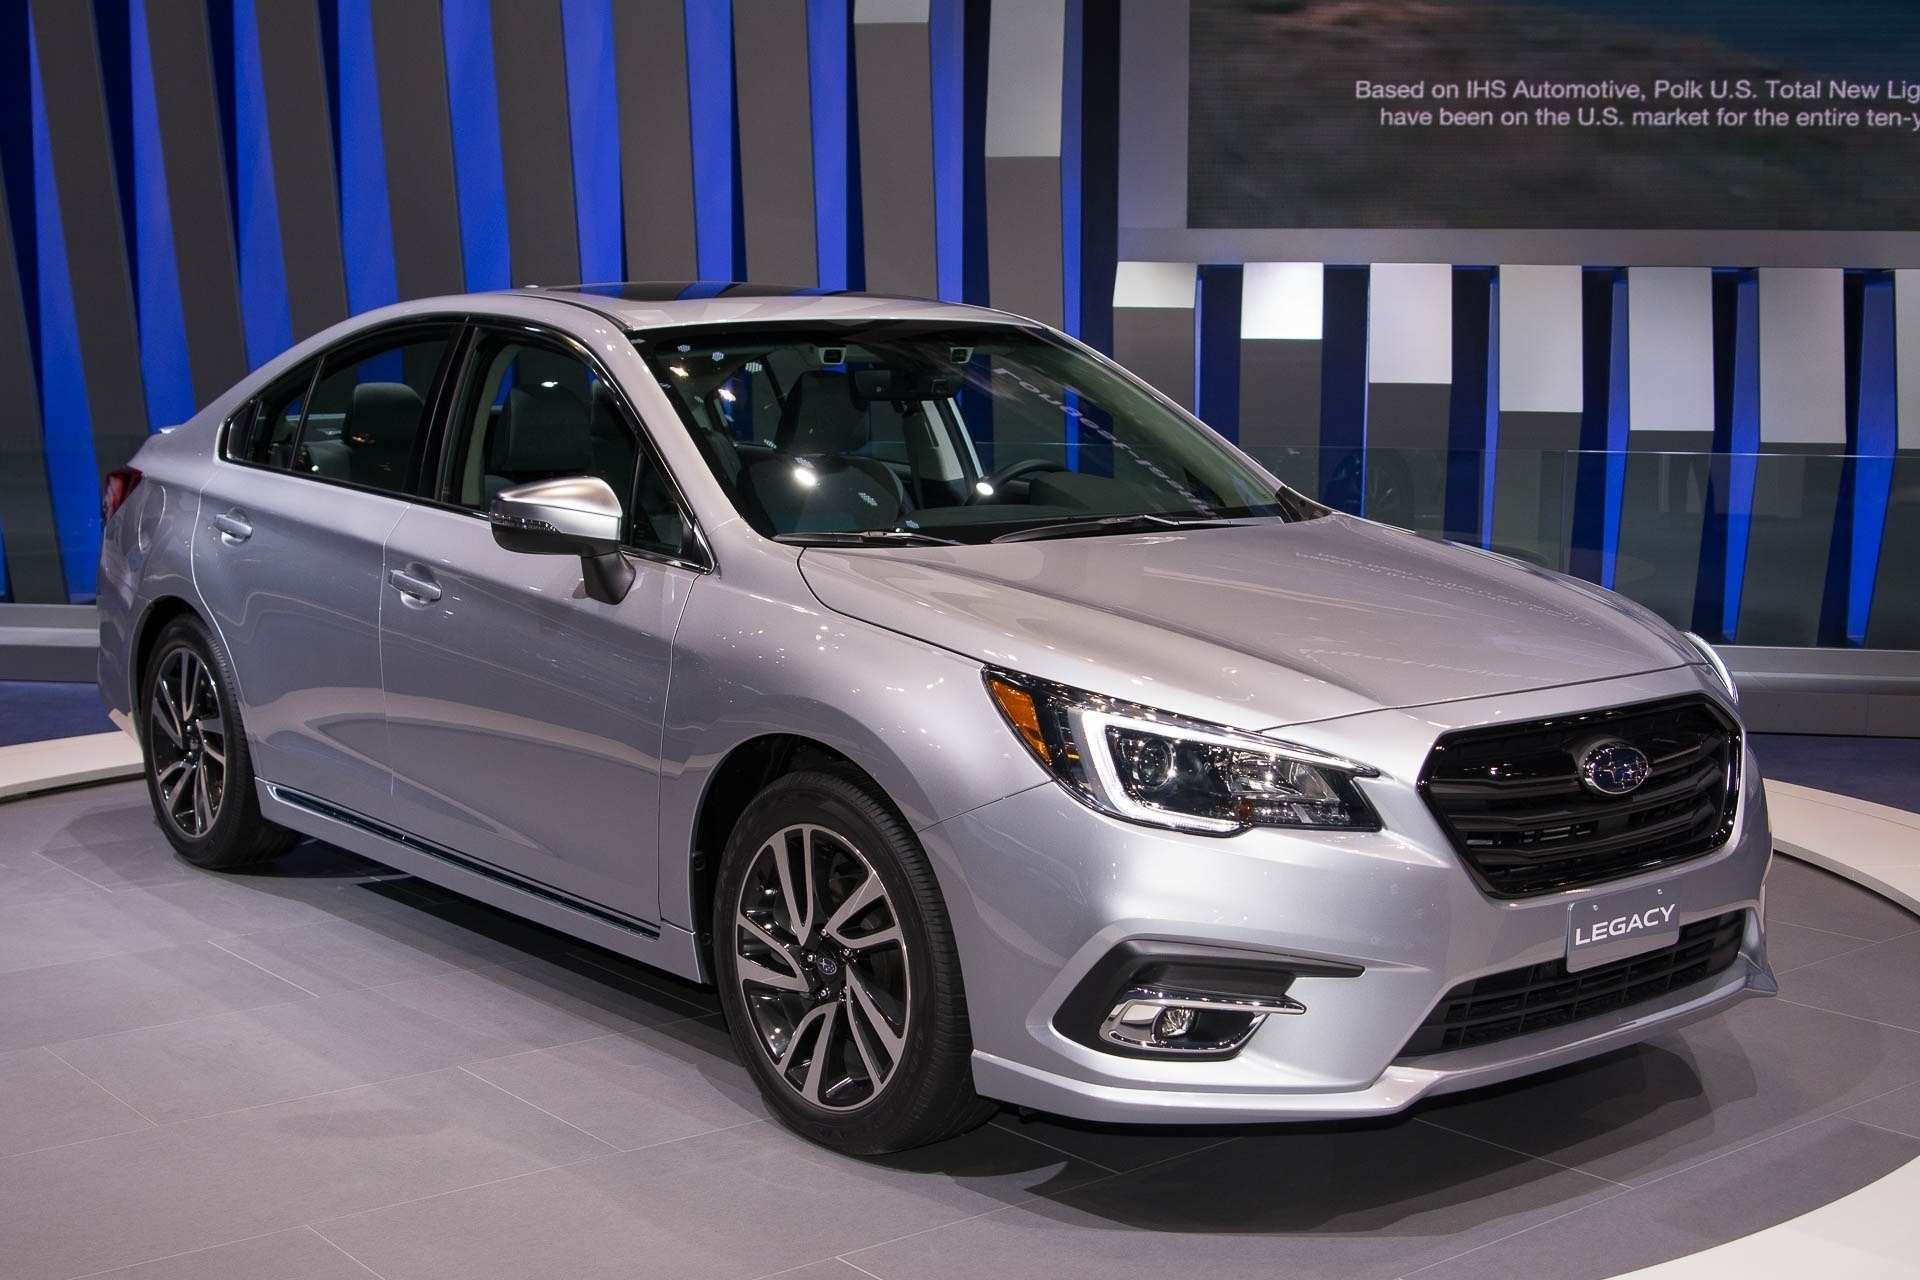 70 Great New Subaru Legacy 2019 Gt Review Concept by New Subaru Legacy 2019 Gt Review